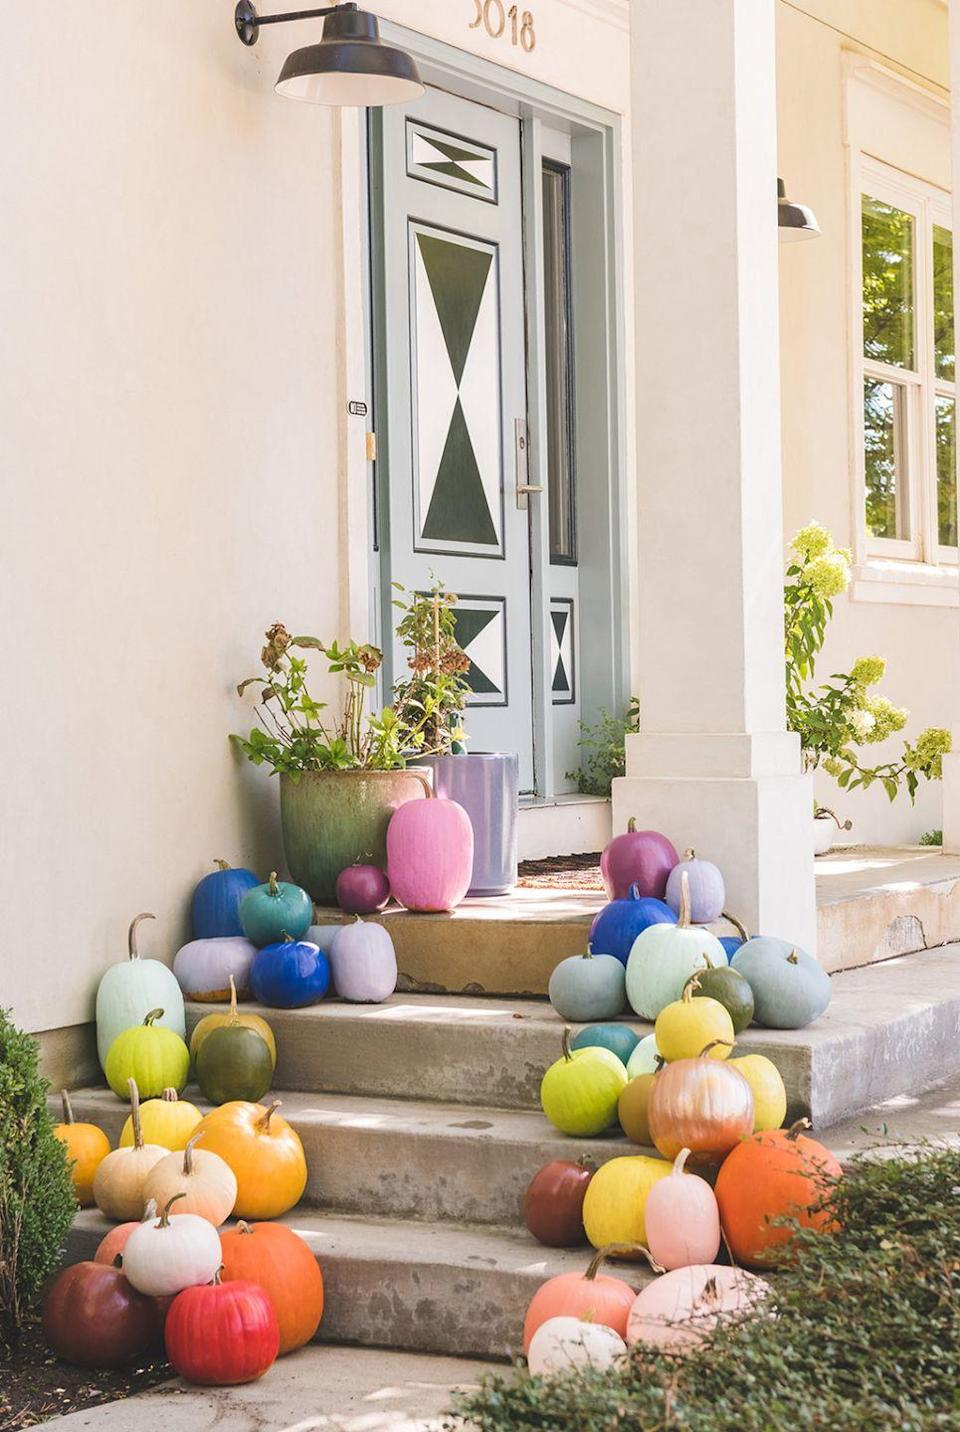 """<p>On the other end of the spectrum, if you love loads of color, this rainbow outdoor pumpkin display is one for the books. </p><p><strong>See more at <a href=""""https://thehousethatlarsbuilt.com/2020/08/diy-rainbow-pumpkins.html/"""" rel=""""nofollow noopener"""" target=""""_blank"""" data-ylk=""""slk:The House That Lars Built"""" class=""""link rapid-noclick-resp"""">The House That Lars Built</a>. </strong></p><p><a class=""""link rapid-noclick-resp"""" href=""""https://www.amazon.com/Krylon-K01020A07-Premium-Metallic-Brilliance/dp/B00448FUB8?tag=syn-yahoo-20&ascsubtag=%5Bartid%7C2164.g.36877187%5Bsrc%7Cyahoo-us"""" rel=""""nofollow noopener"""" target=""""_blank"""" data-ylk=""""slk:SHOP METALLIC SPRAY PAINT""""><strong>SHOP METALLIC SPRAY PAINT</strong></a></p>"""